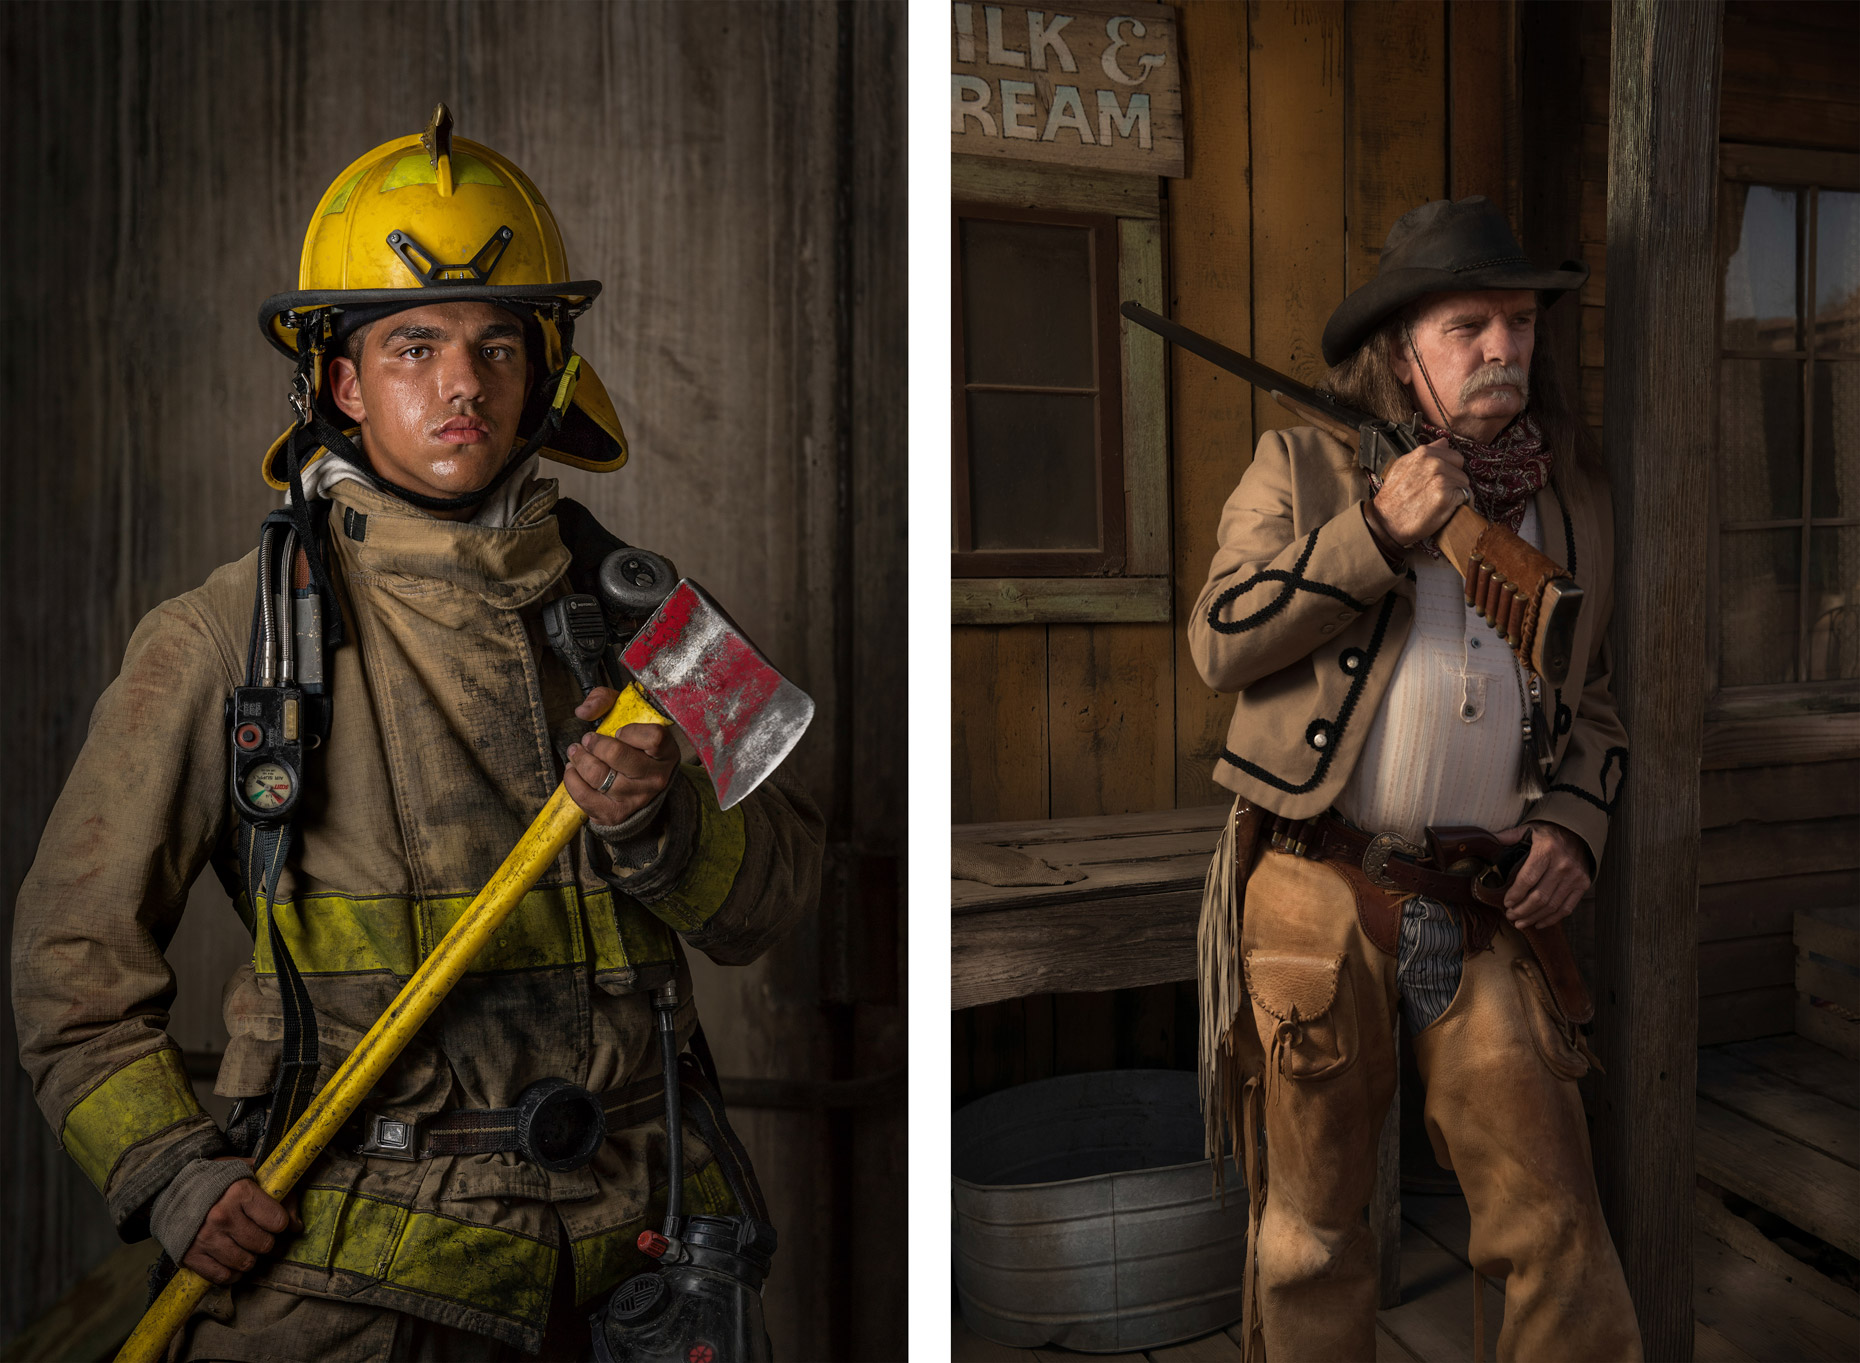 Fireman and Cowboy - Arlington, Texas Editorial photographer Kevin Brown